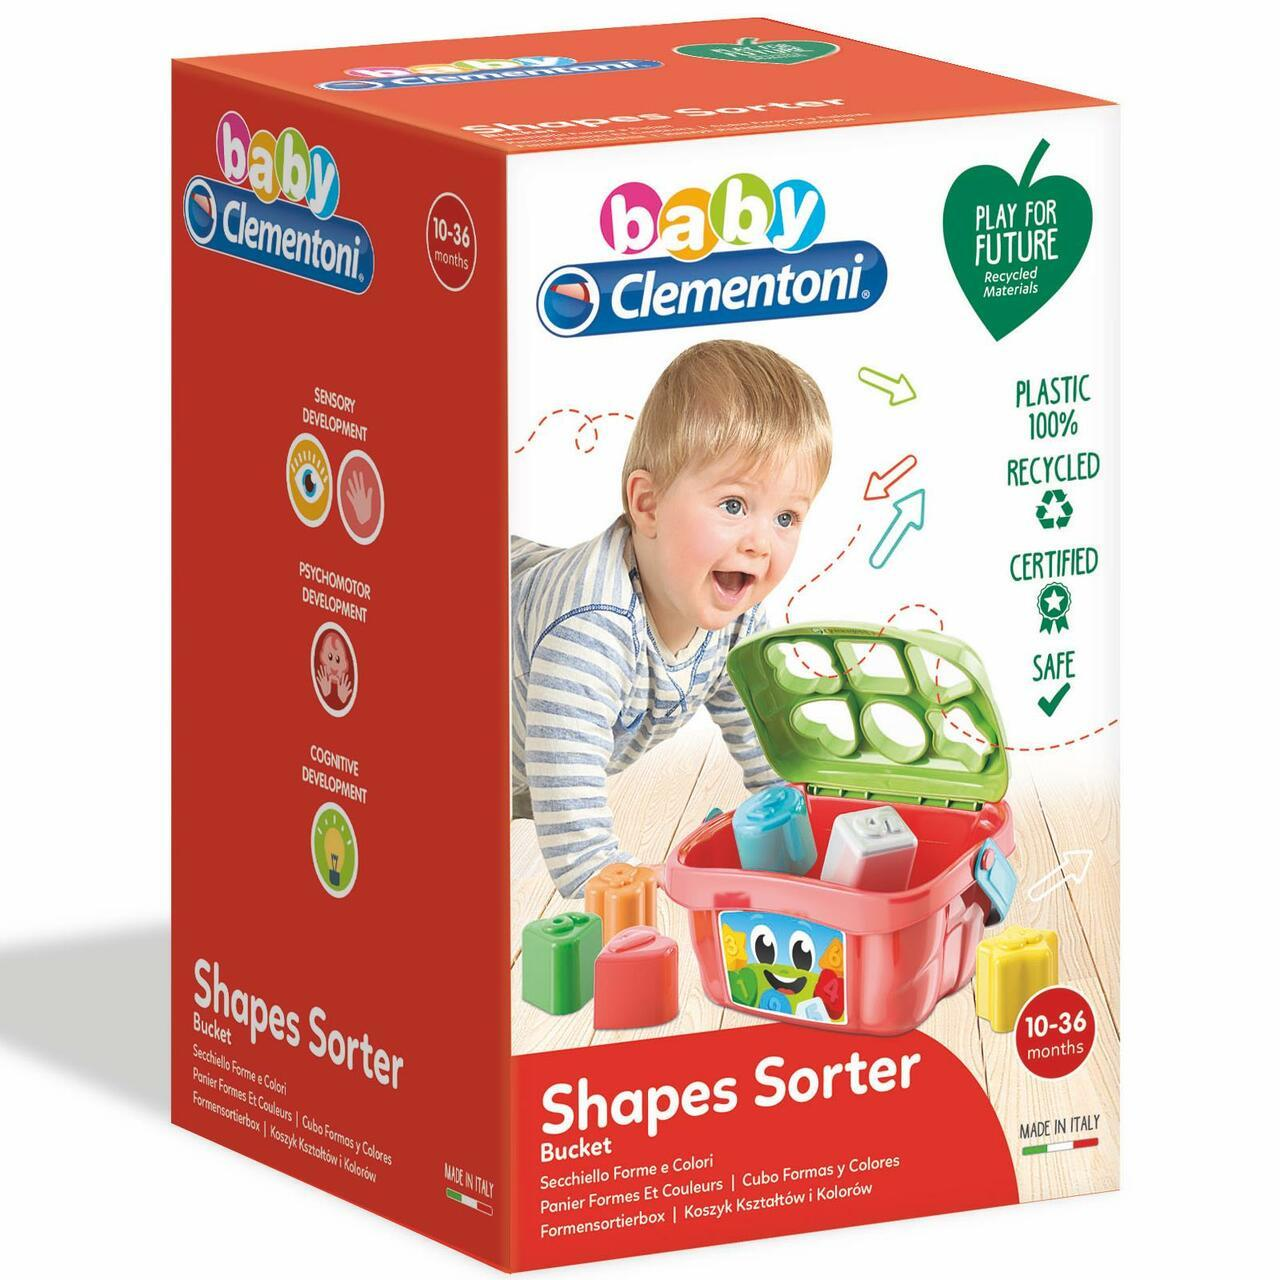 Baby Clementoni Shapes Sorter Bucket3